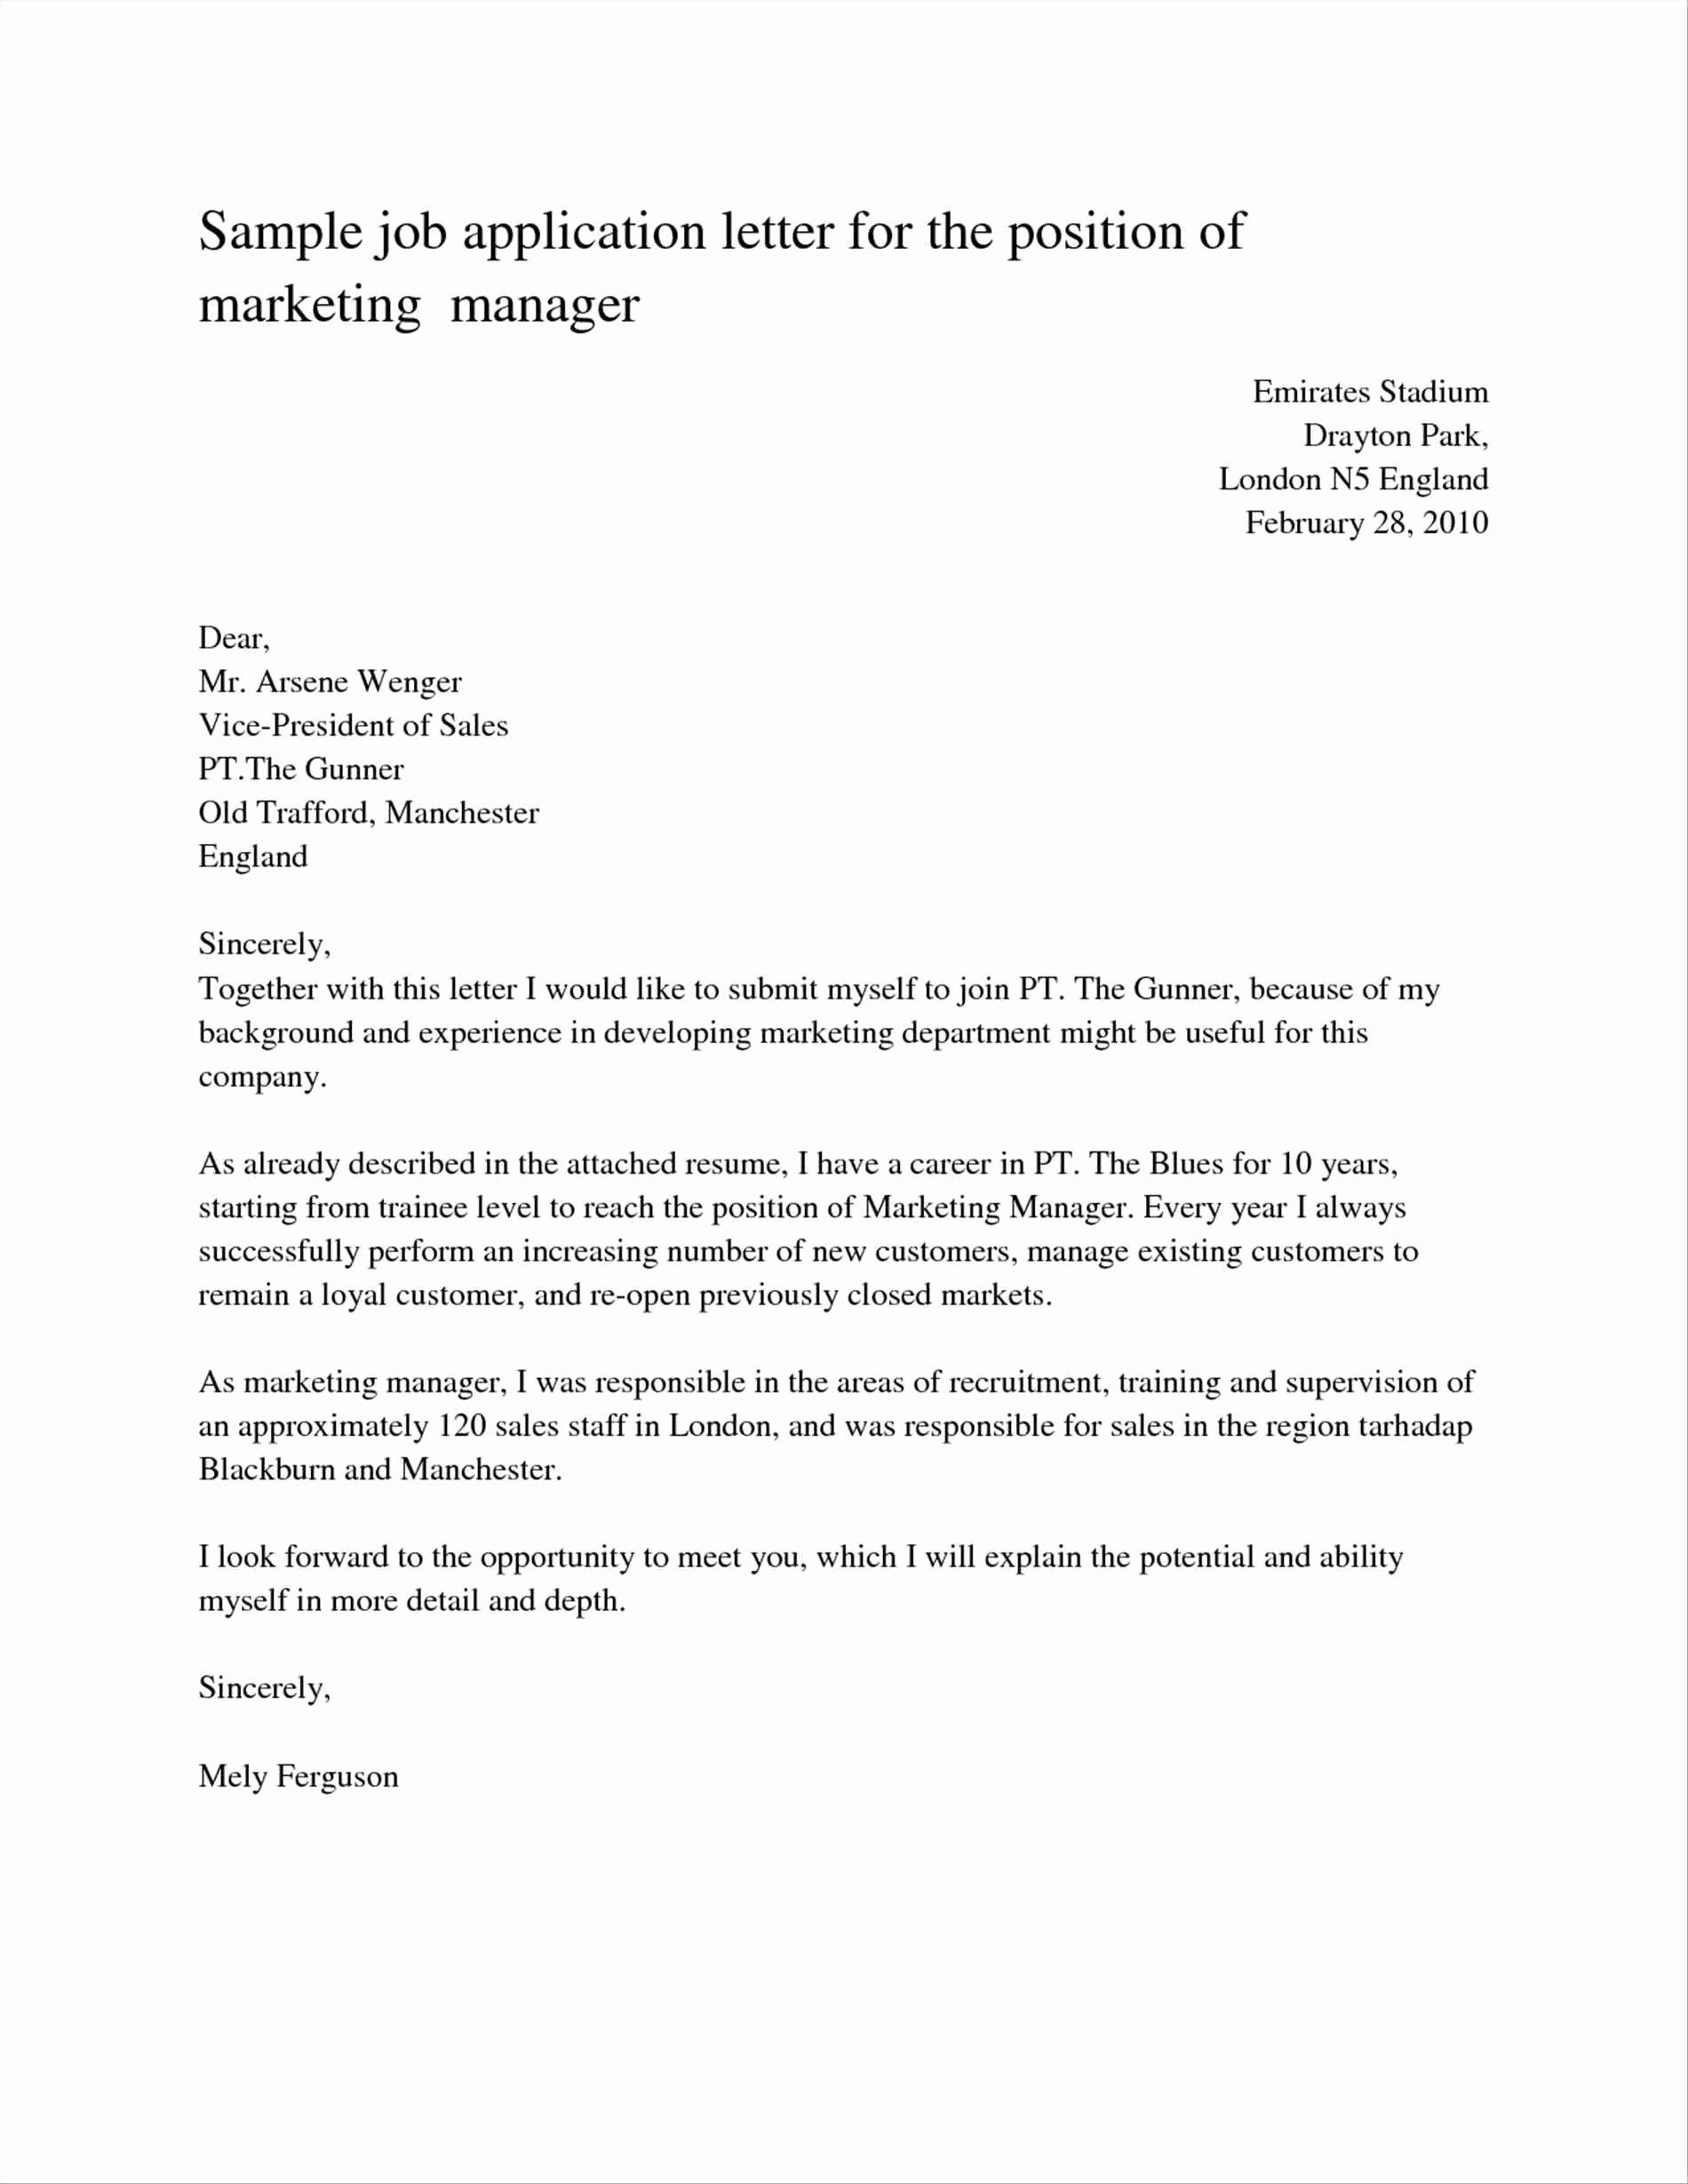 Valid Cover Letter for Marketing Executive Job you can